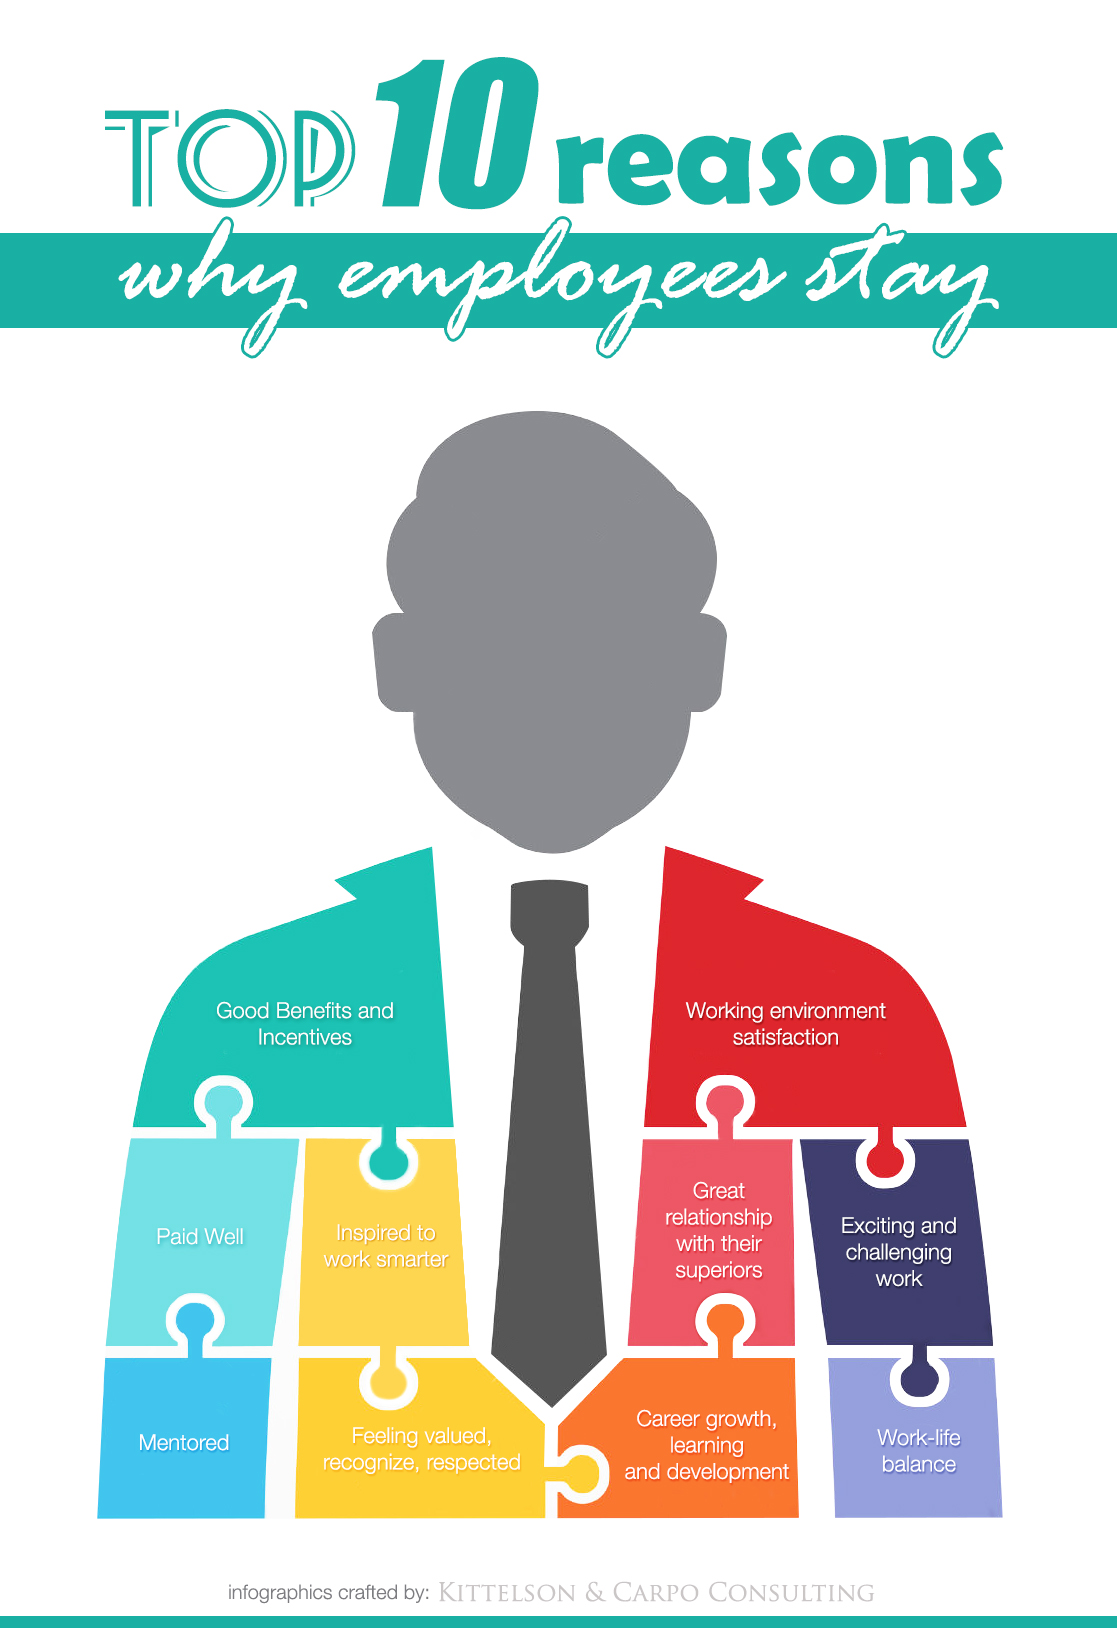 Top 10 reasons why employees stay